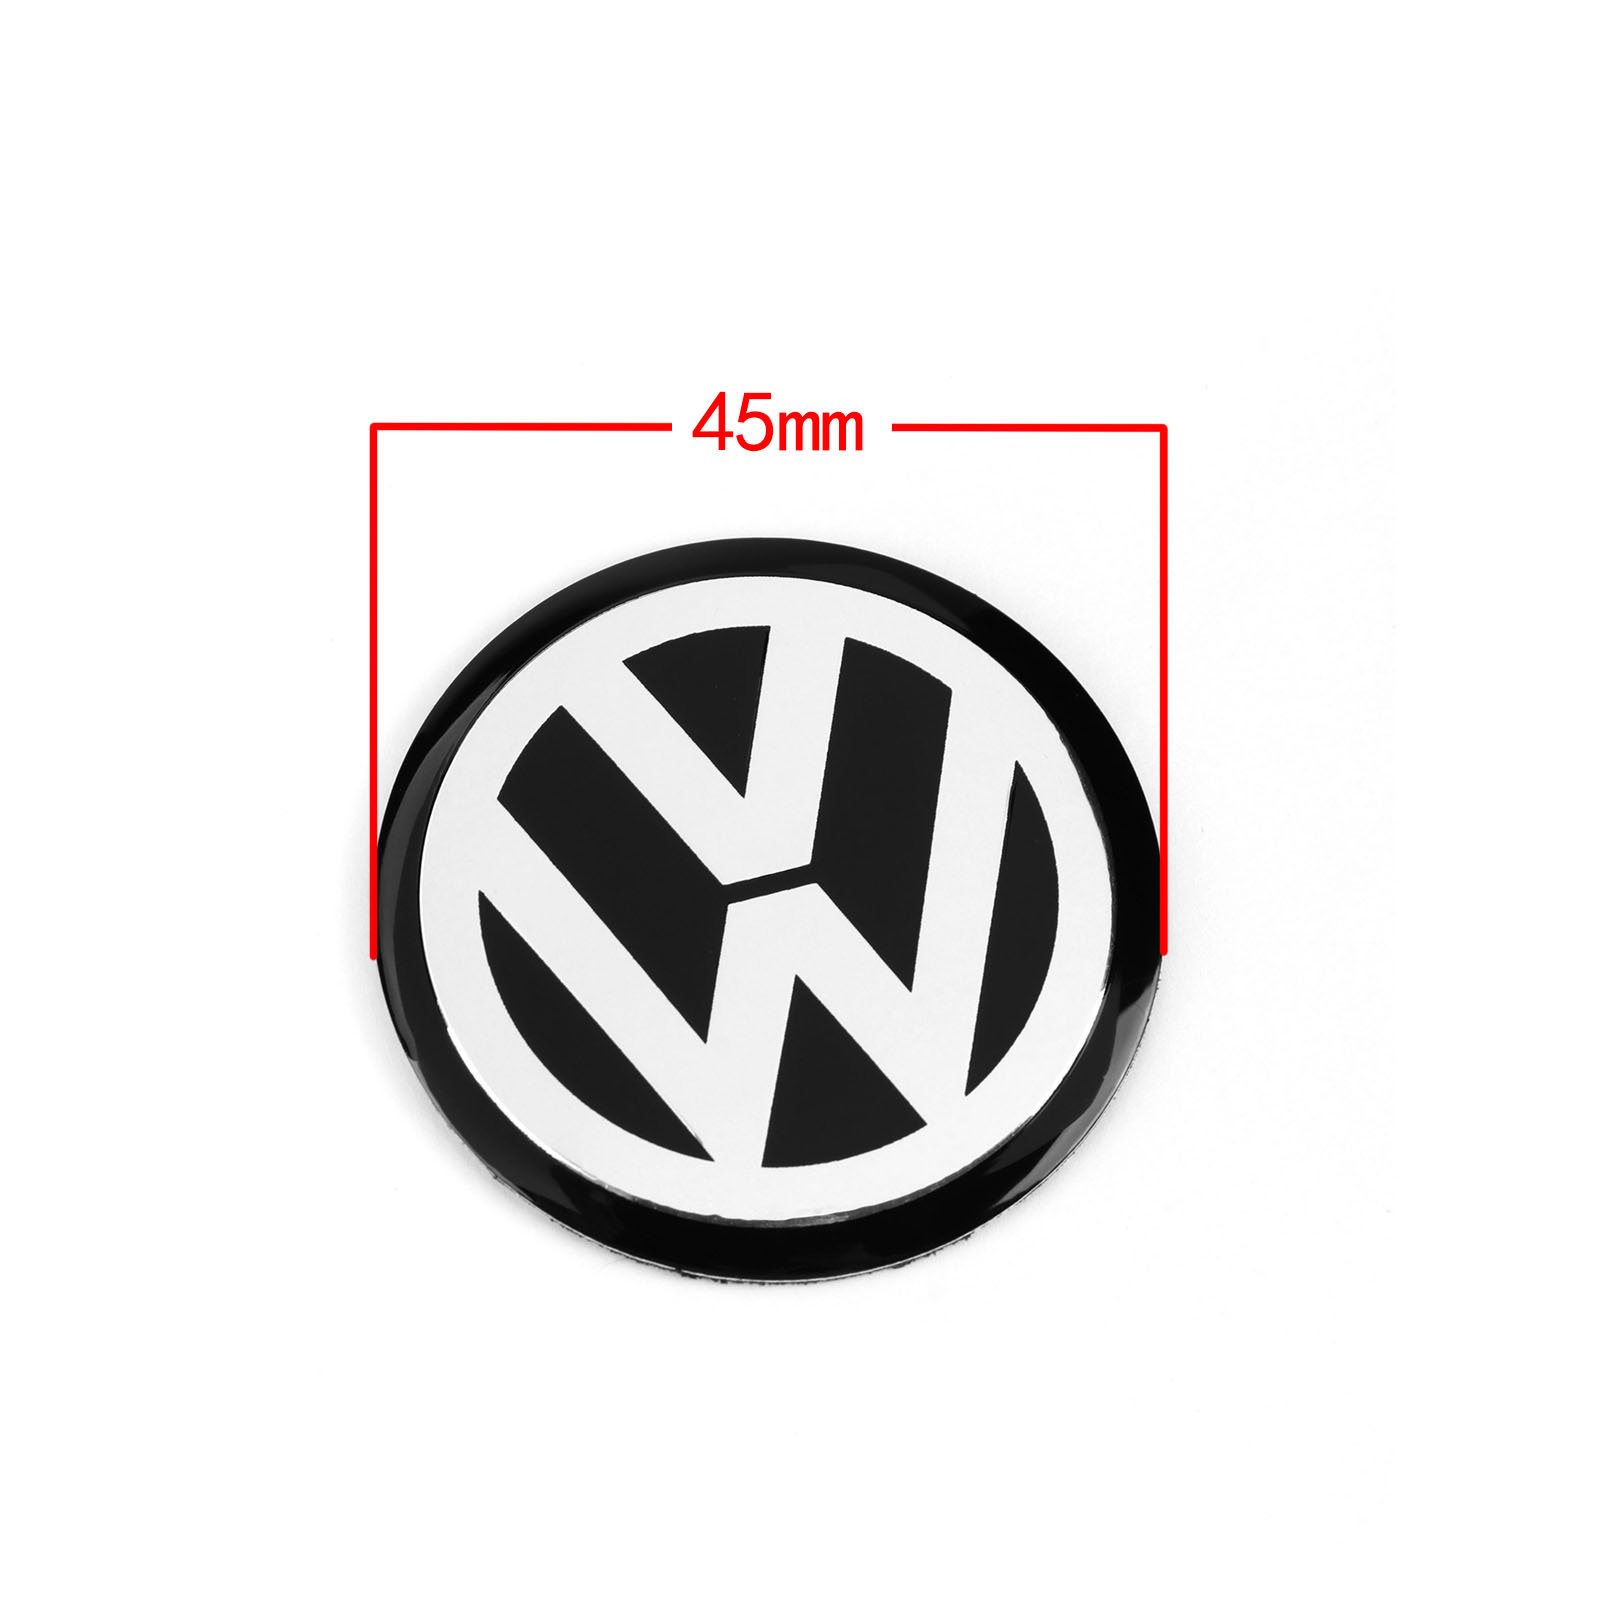 4pcs 45MM 4.5cm Black Car Steering Wheel Center Badge Emblem Logo Decal Sticker Decoration Styling For VW